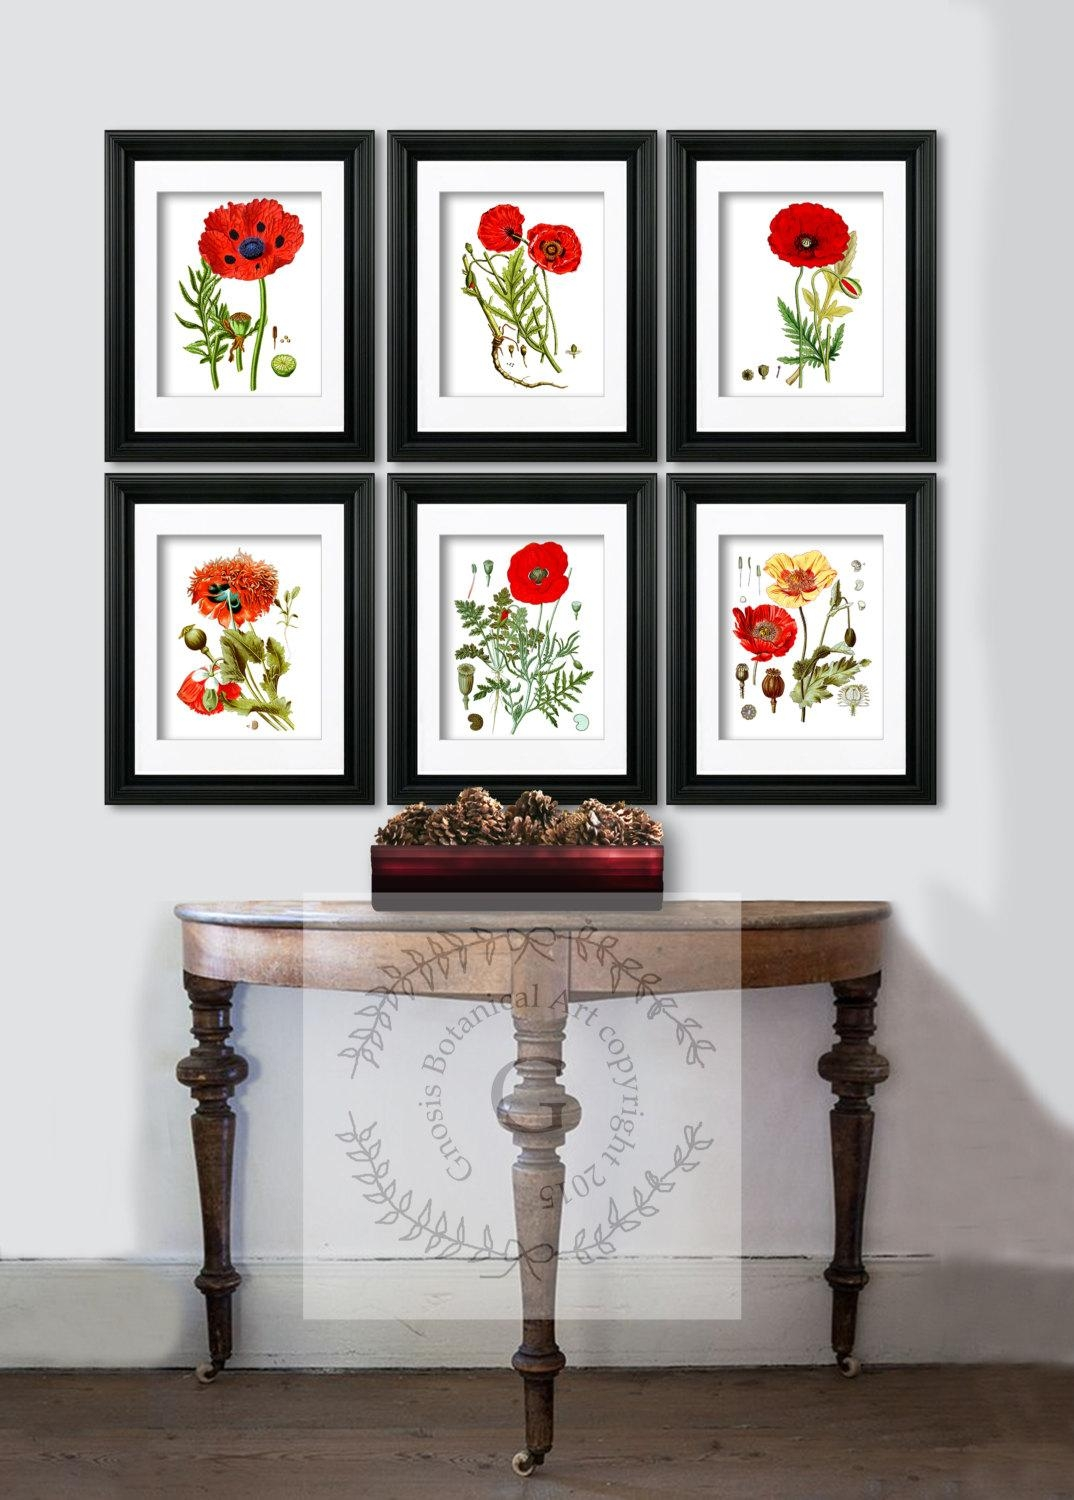 Red Poppy Decor Botanical Prints Red Flowers Poppy Wall Art In Wall Art Print Sets (View 11 of 20)